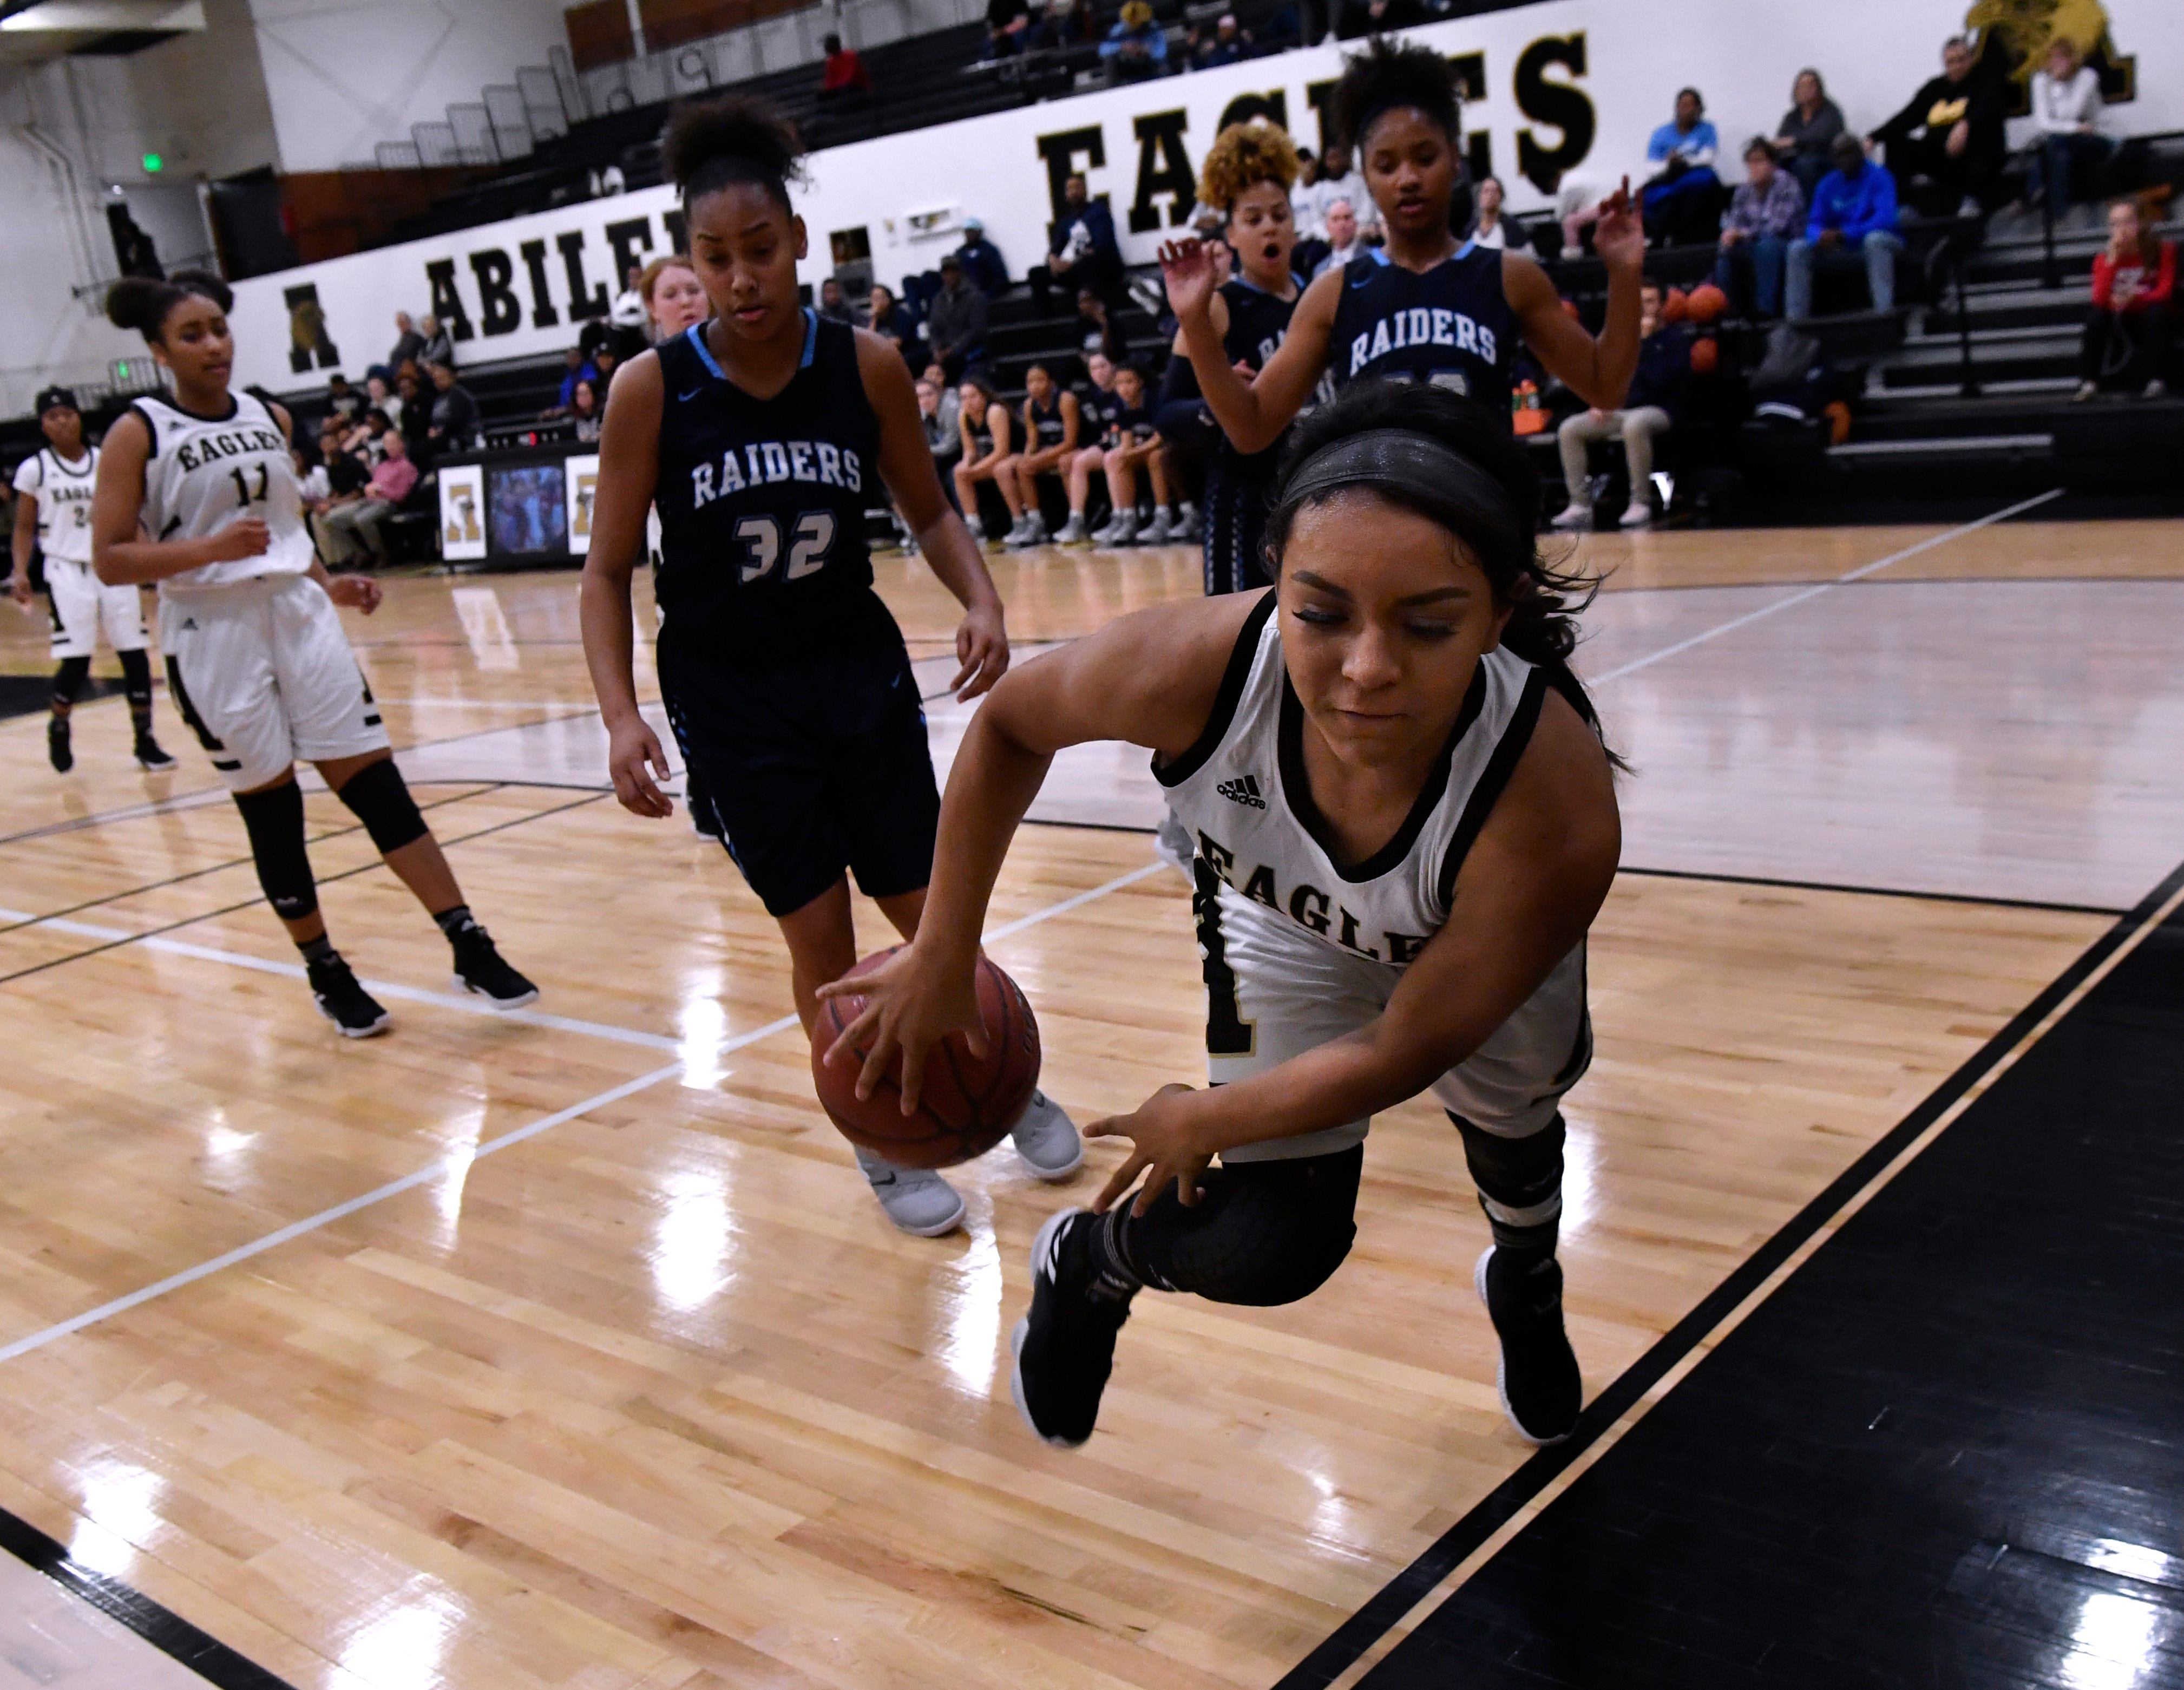 Abilene High's Georgia Montes dives out of bounds while trying to save the ball during Friday's game against Hurst Bell in the Eagle Gym Jan. 25, 2019. Final score was 58-51, Hurst Bell.